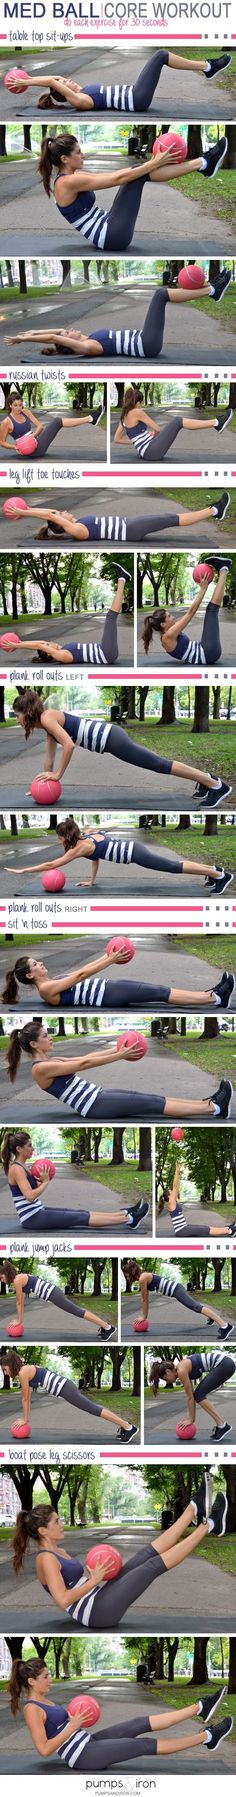 Workout plans, useful home fitness advice to keep it simple. Inspect that fitness workout pin-image ref 6316918083 here. Fitness Workouts, Yoga Fitness, At Home Workouts, Fitness Motivation, Health Fitness, Fitness Plan, Health Diet, Core Workouts, Muscle Fitness